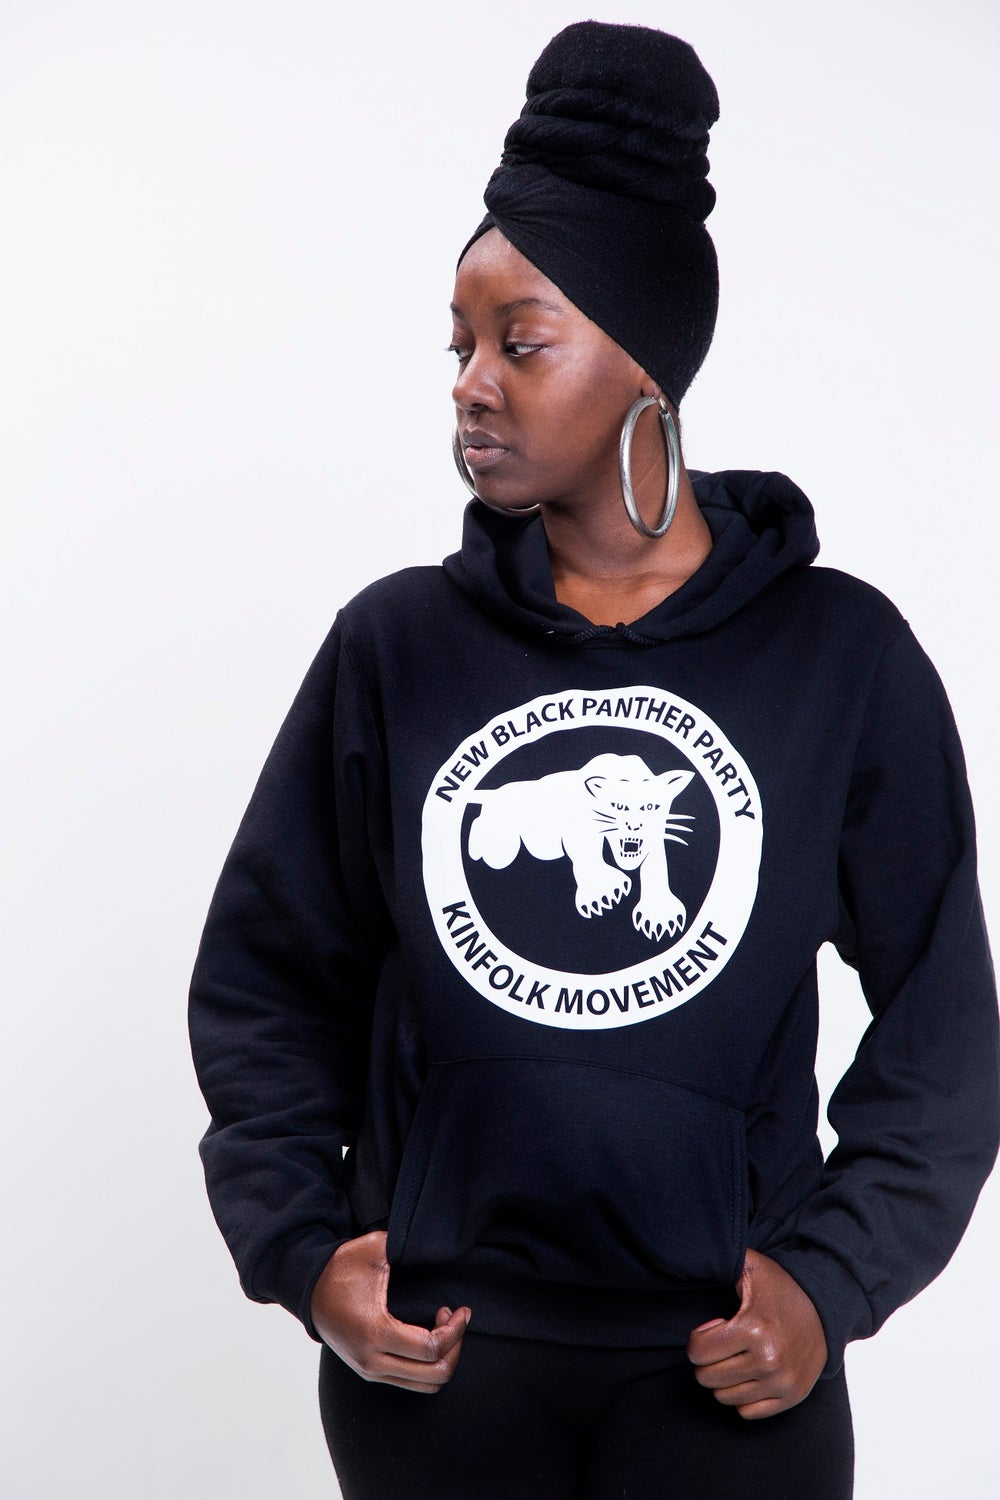 Image of New Black Panther Party Kinfolk Movement Hoodie